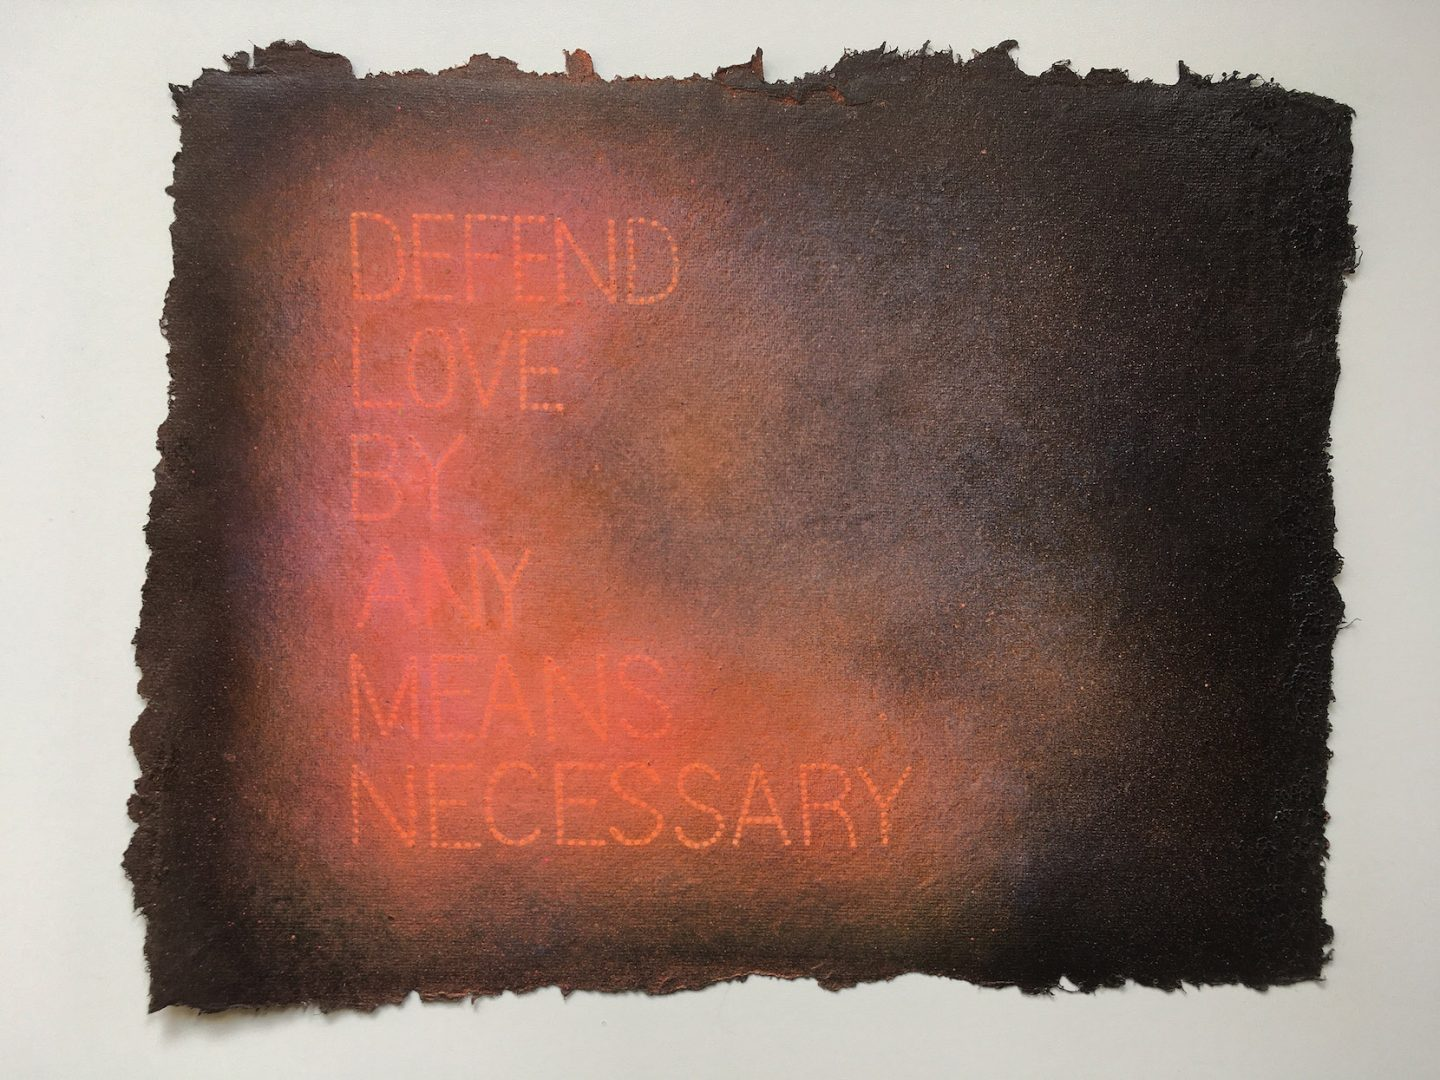 Renée Stout, The Mandate was Given 2020, Latex, acrylic and spay paint and glitter on handmade paper, 9 x 11 inches, Photo by the artist